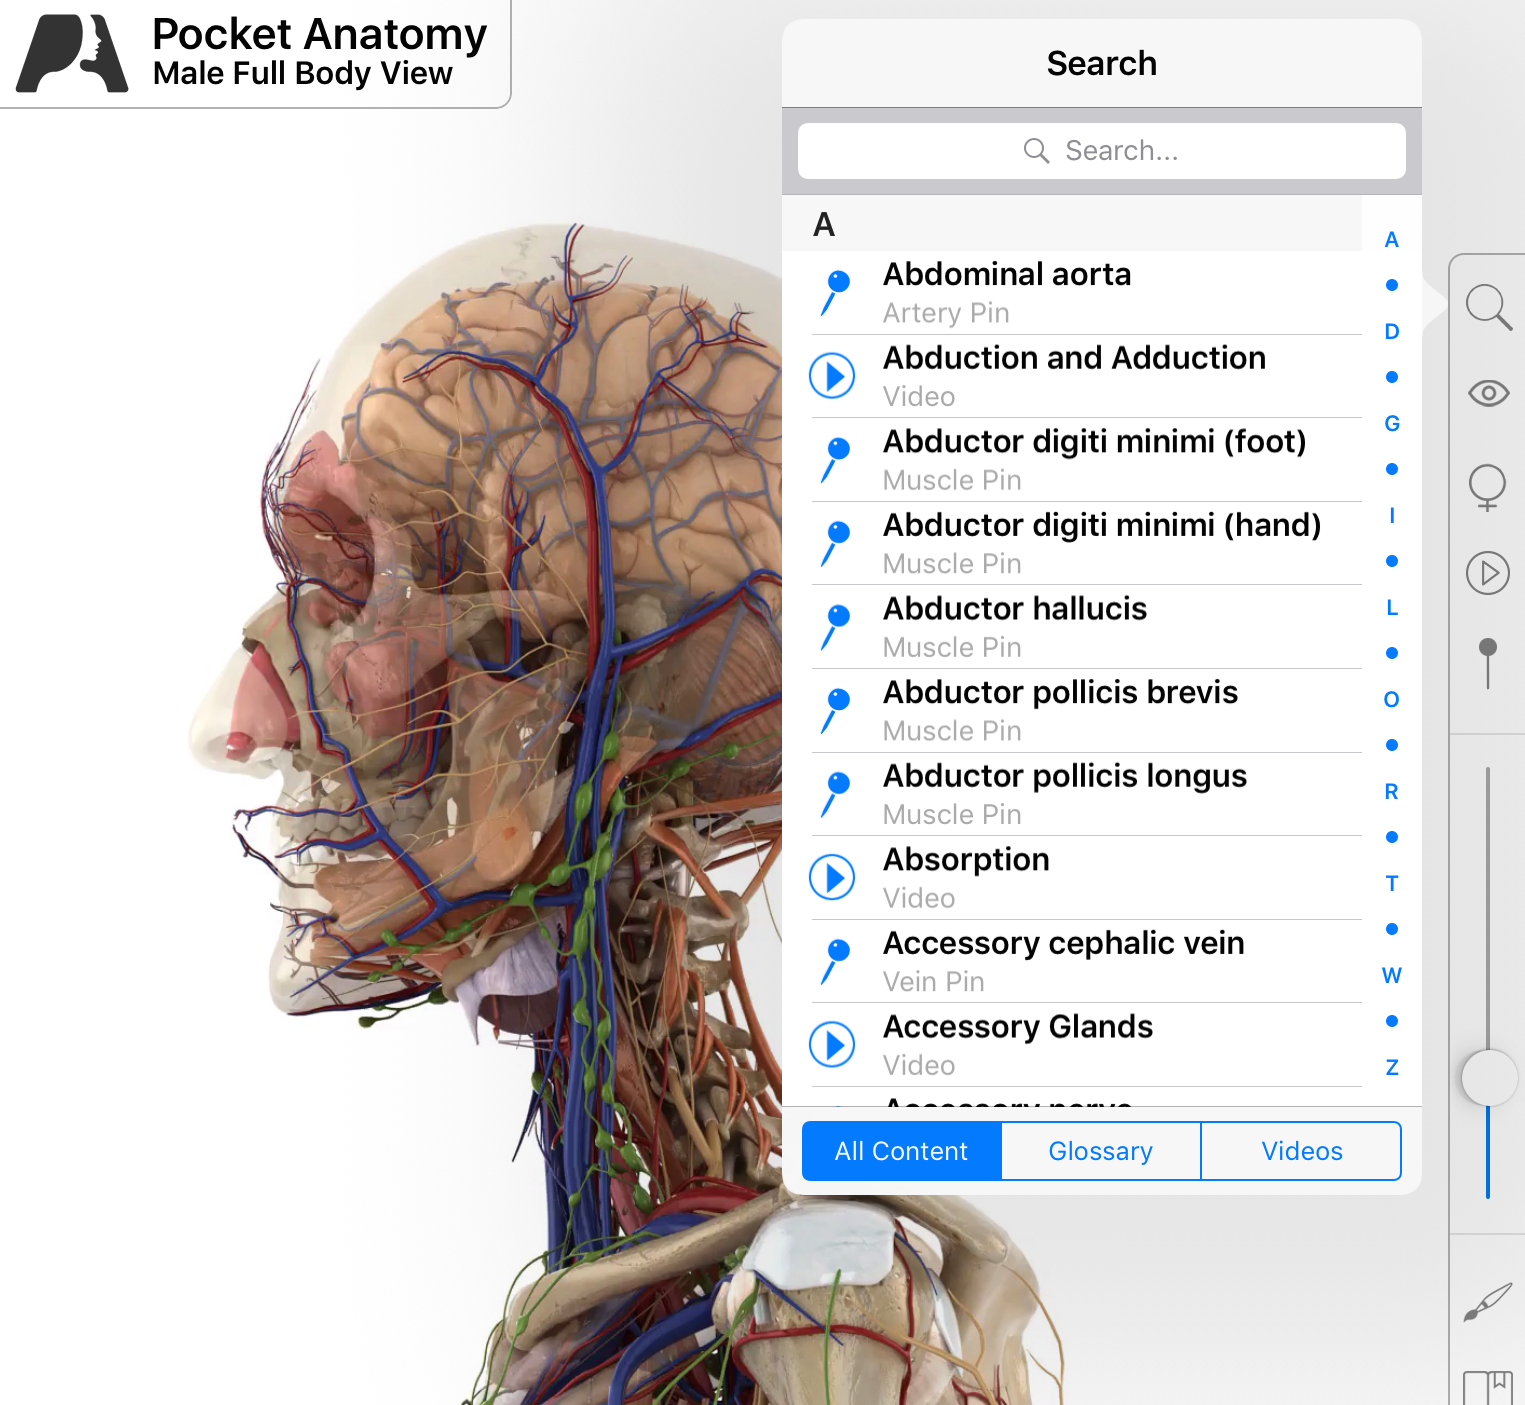 Medical Terminology Pocket Anatomy